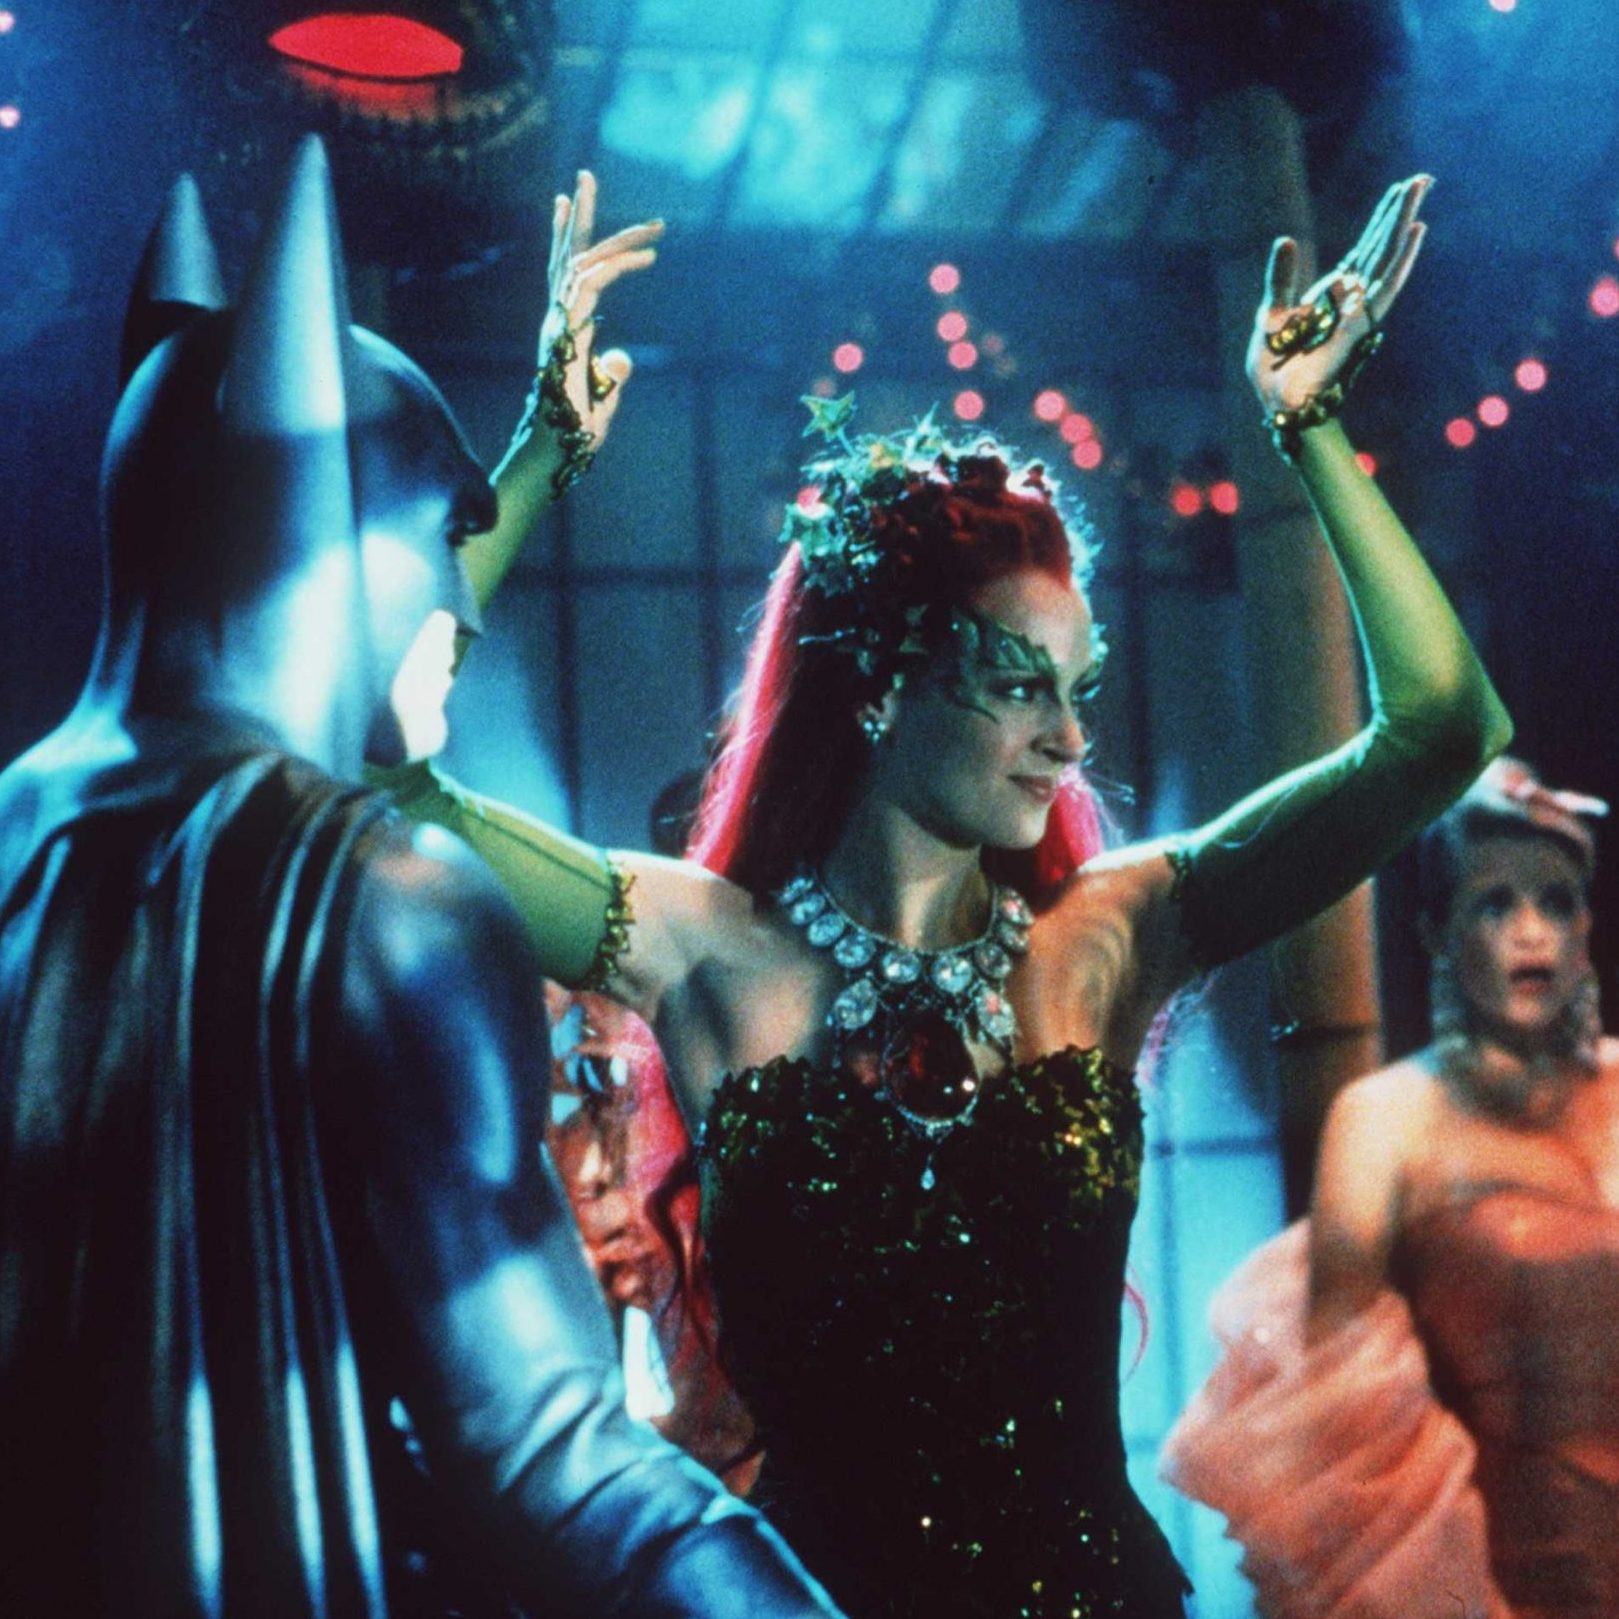 batman and robin movie stills starring uma thurman as news photo 51101343 1566496304 scaled e1602752316668 20 Things You Might Not Have Realised About The 1997 Film Batman & Robin